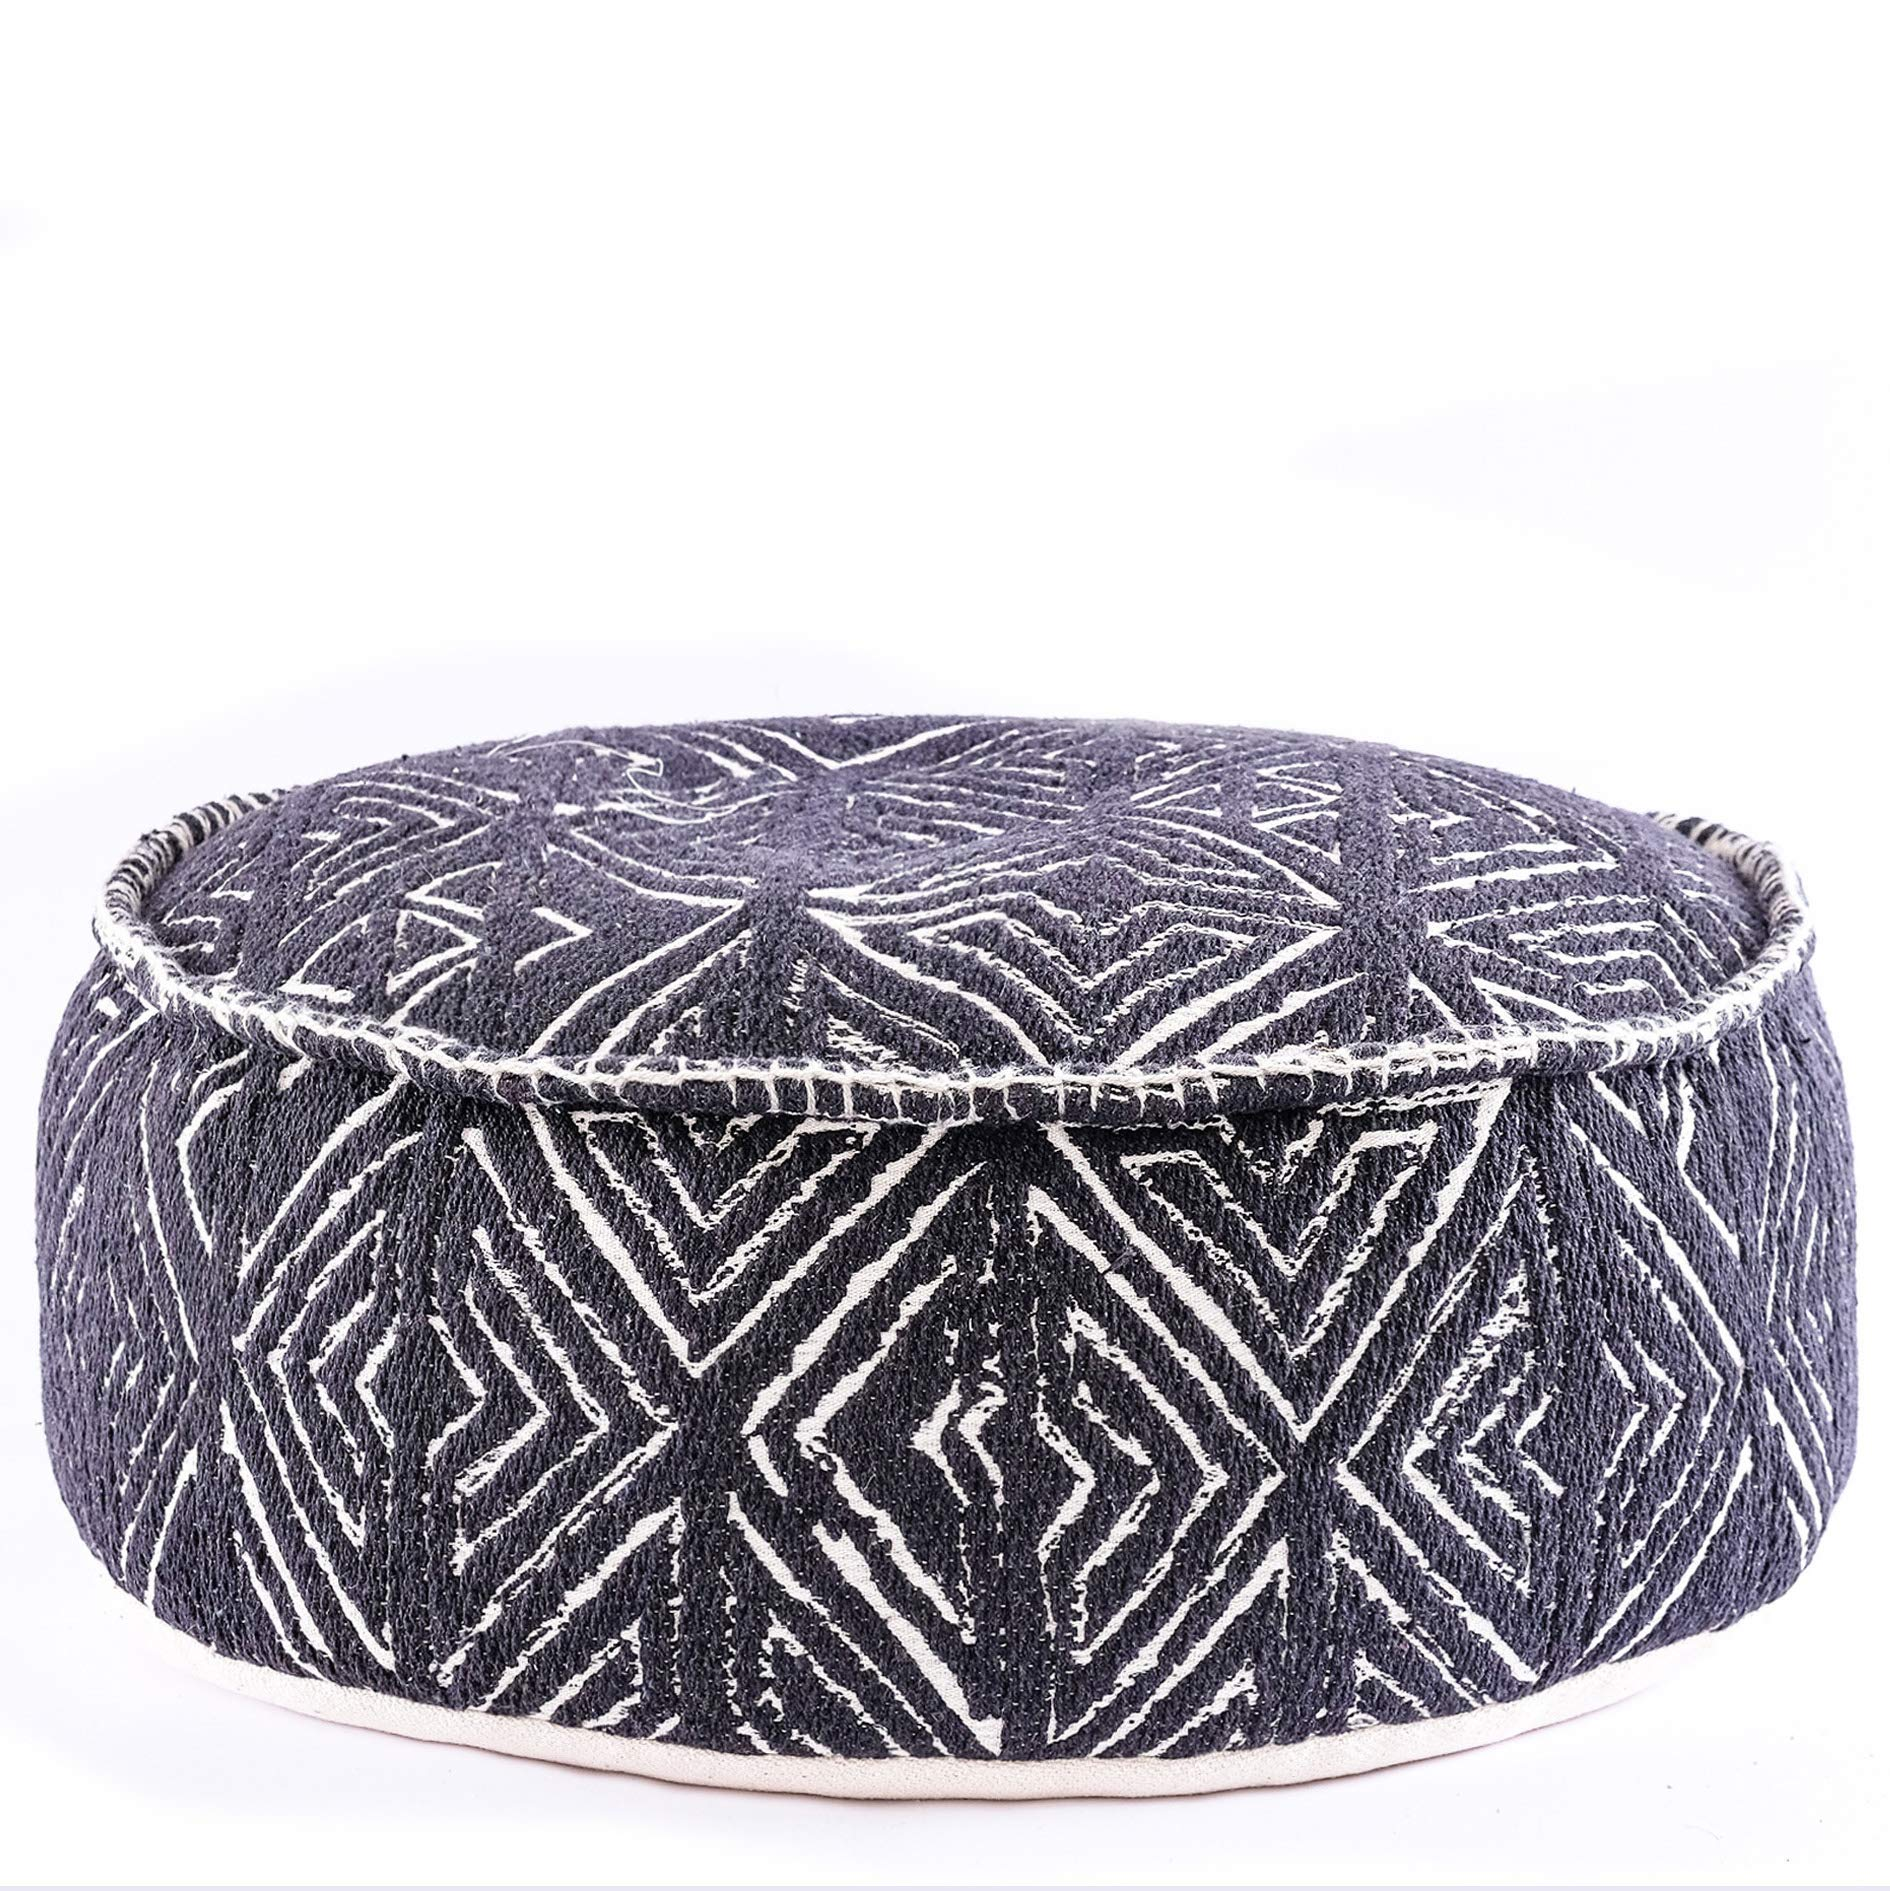 Mandala Life ART Tribal Pouf Ottoman - 24x8 inches STUFFED-Luxury, Artisan Room Décor Pouffe for Meditation, Yoga, and Boho Chic Seating Area Stool Floor Pillow Case– Accent Your Living Room, Bedroom